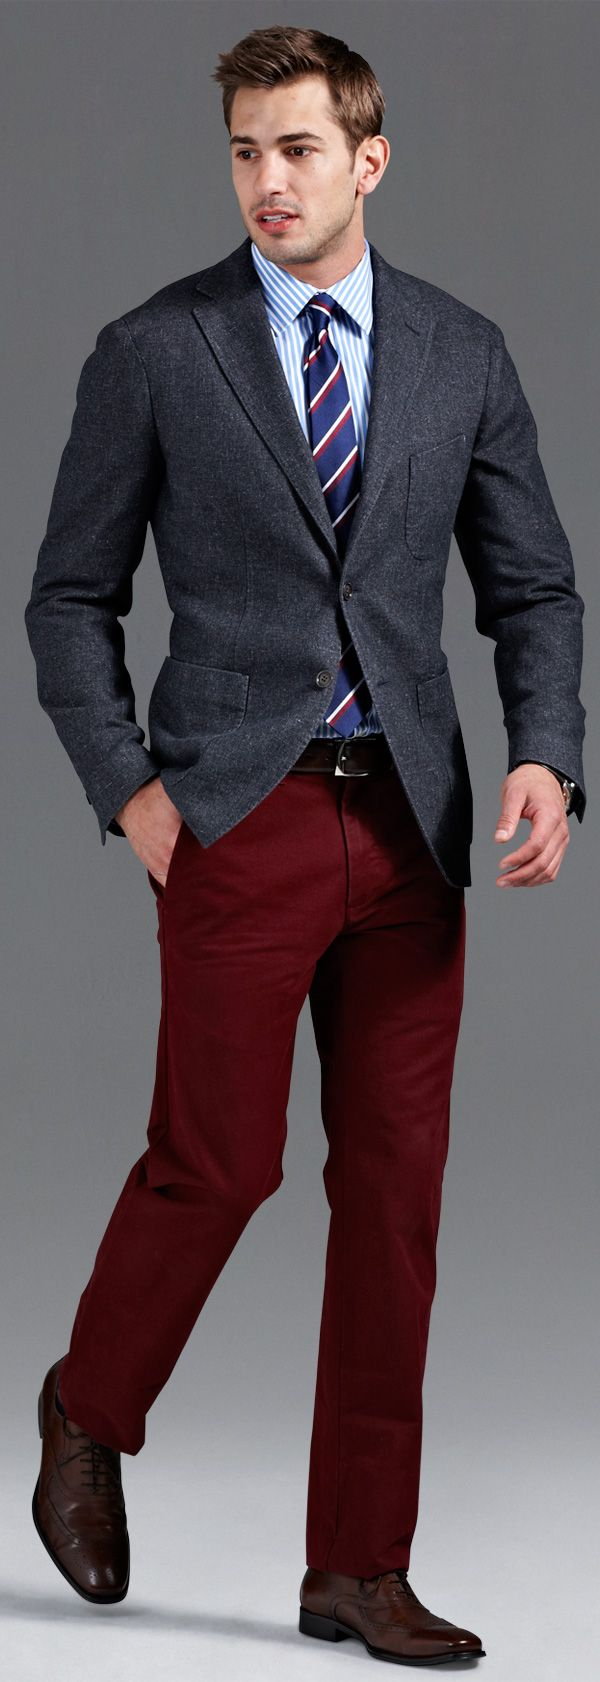 How to Dress for the Office, Nine Ways | Red pants men ...